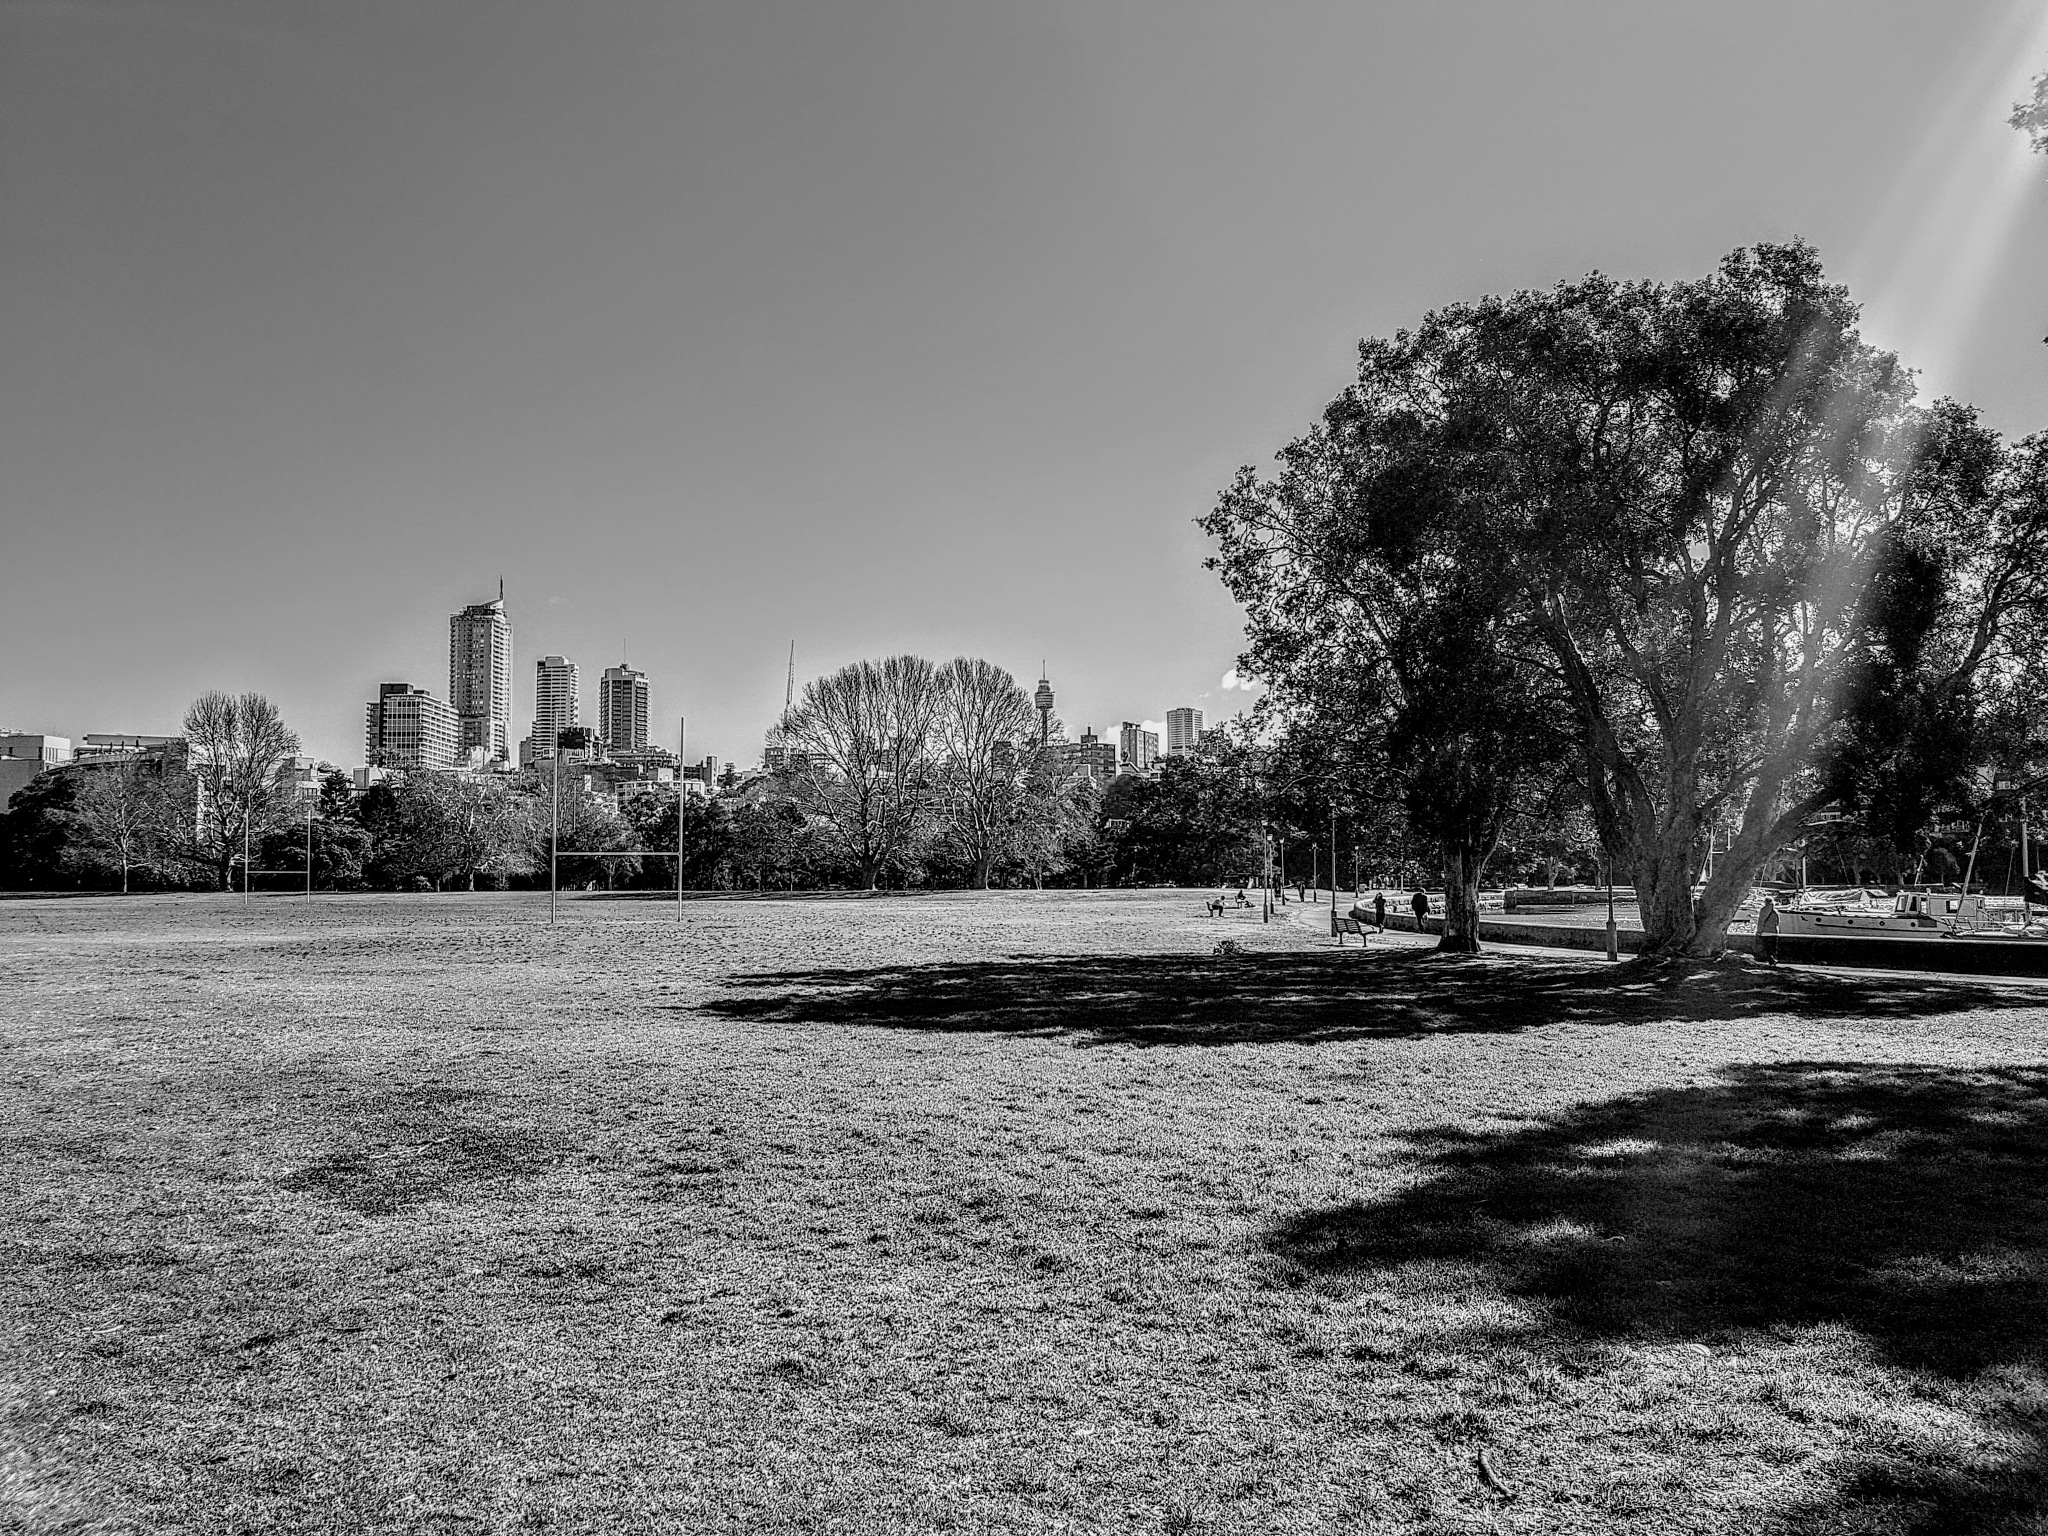 Beam of light radiating down on the park by Amanda Savage